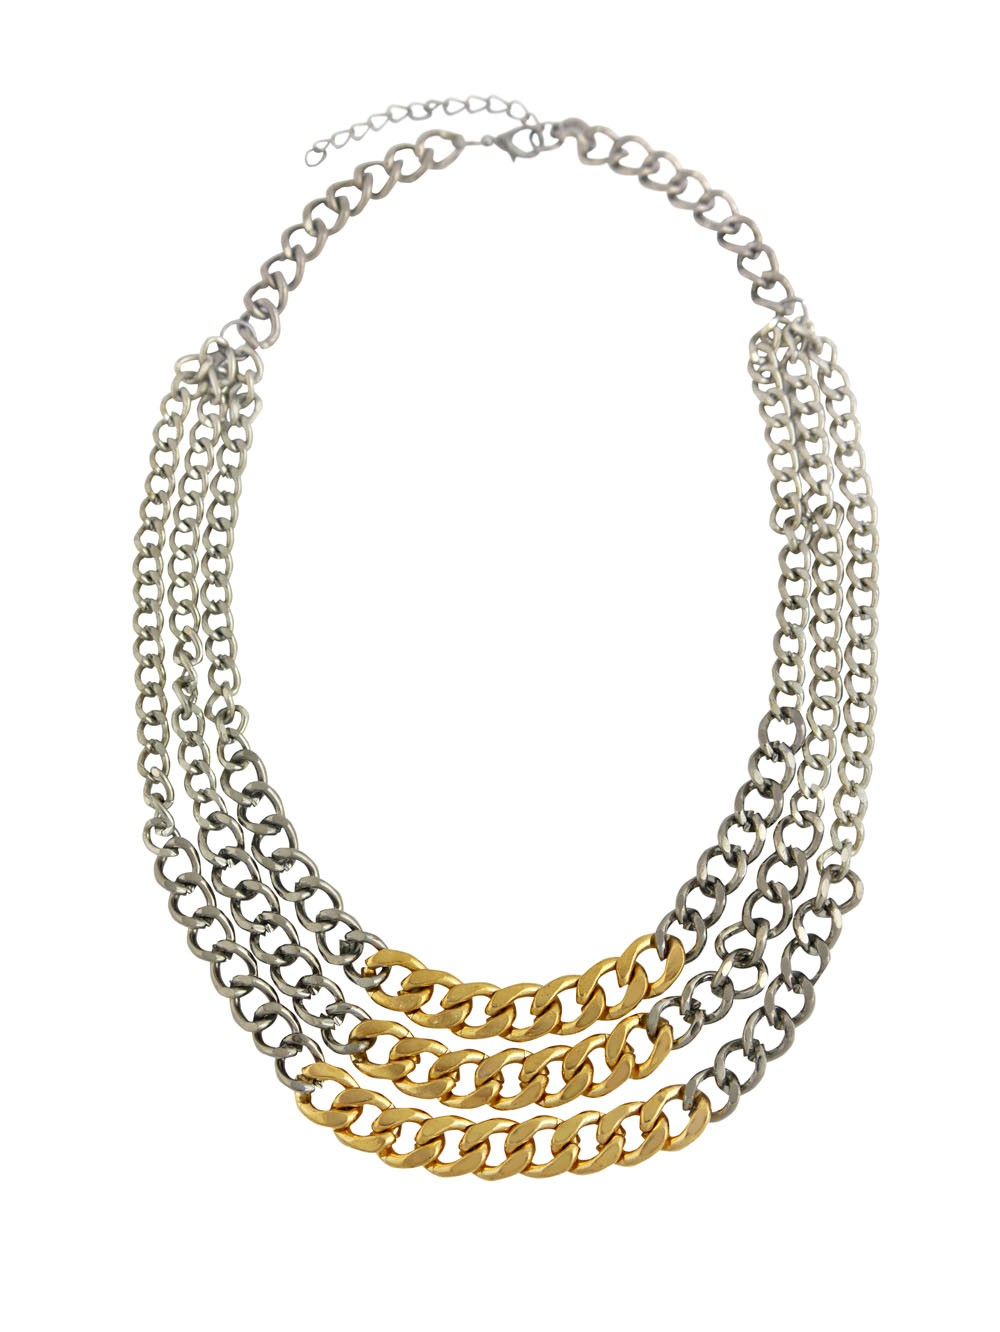 Three Row Chunky Chain Fashion Necklace in Silver, Gold and Gun Black Finish